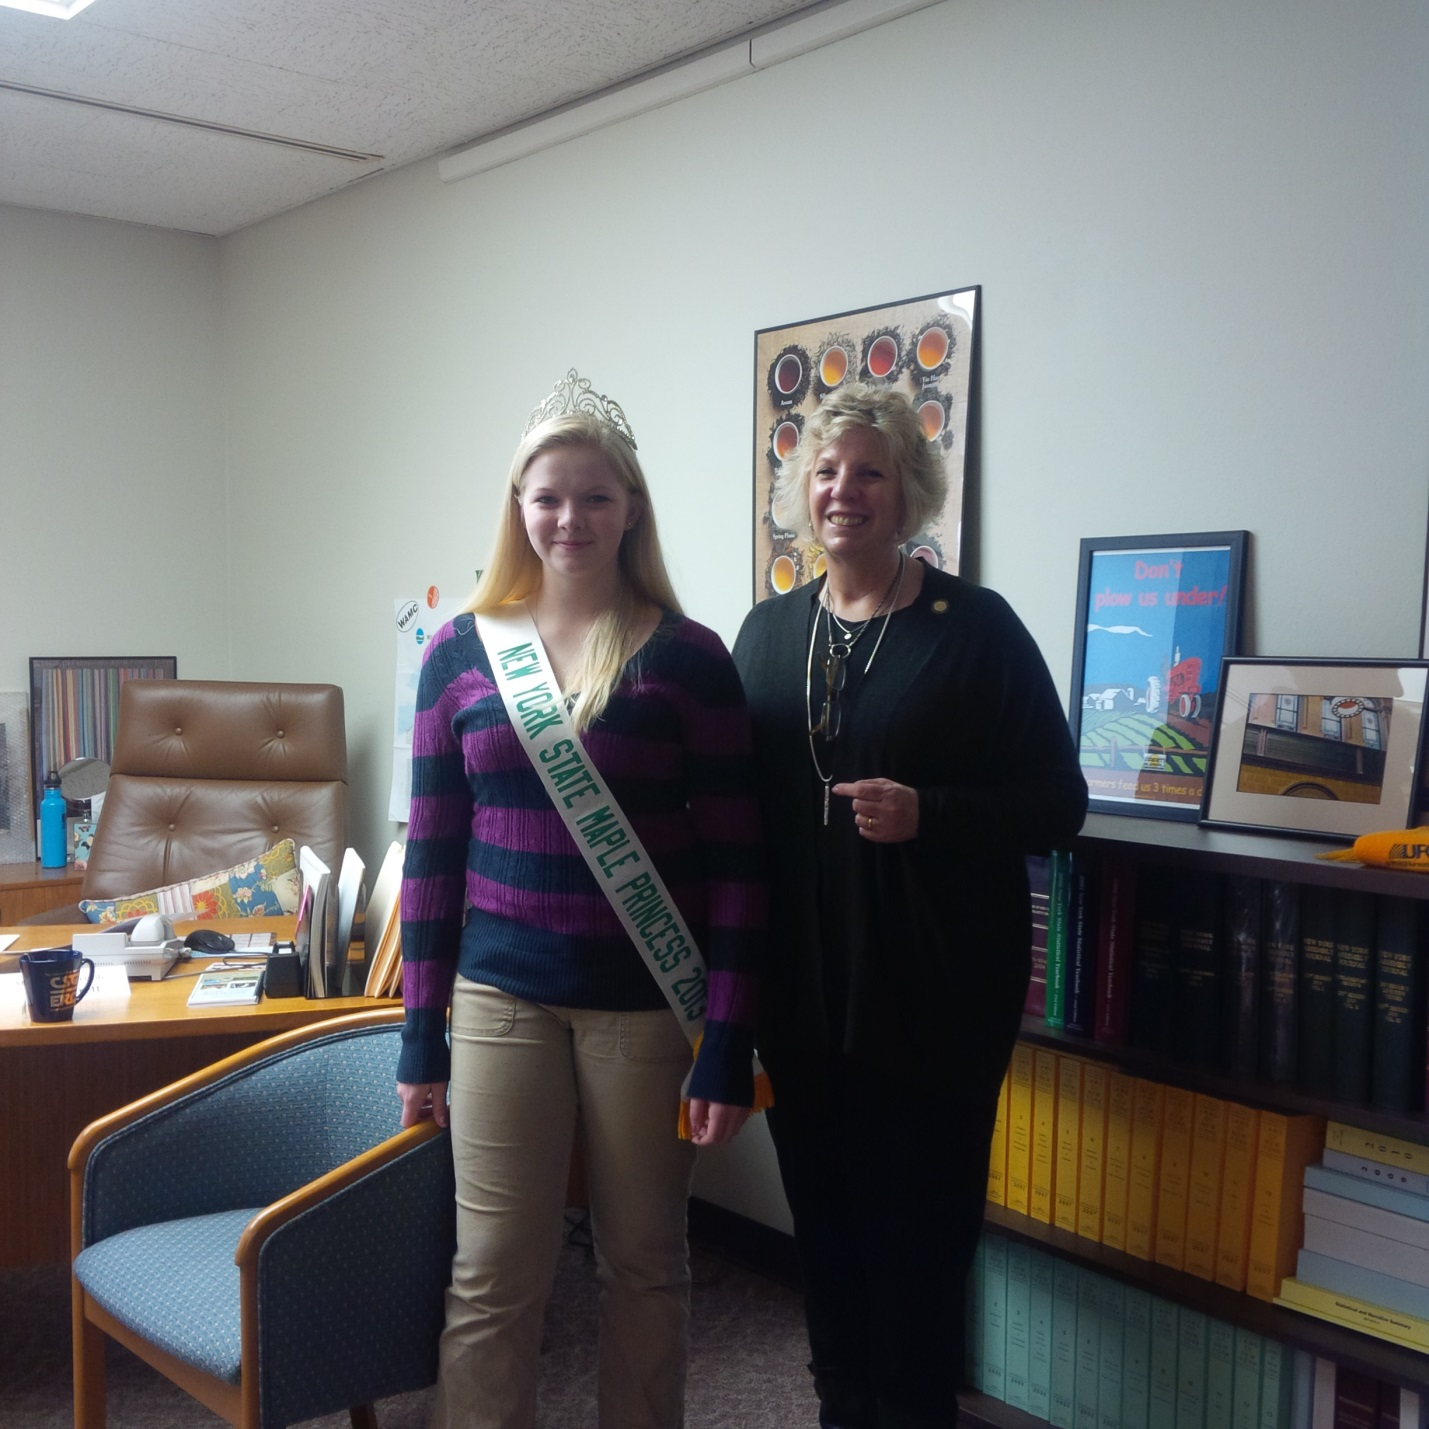 Pictured: Kylea McAdam, NY State Maple Princess visited with Assemblymember Didi Barrett.